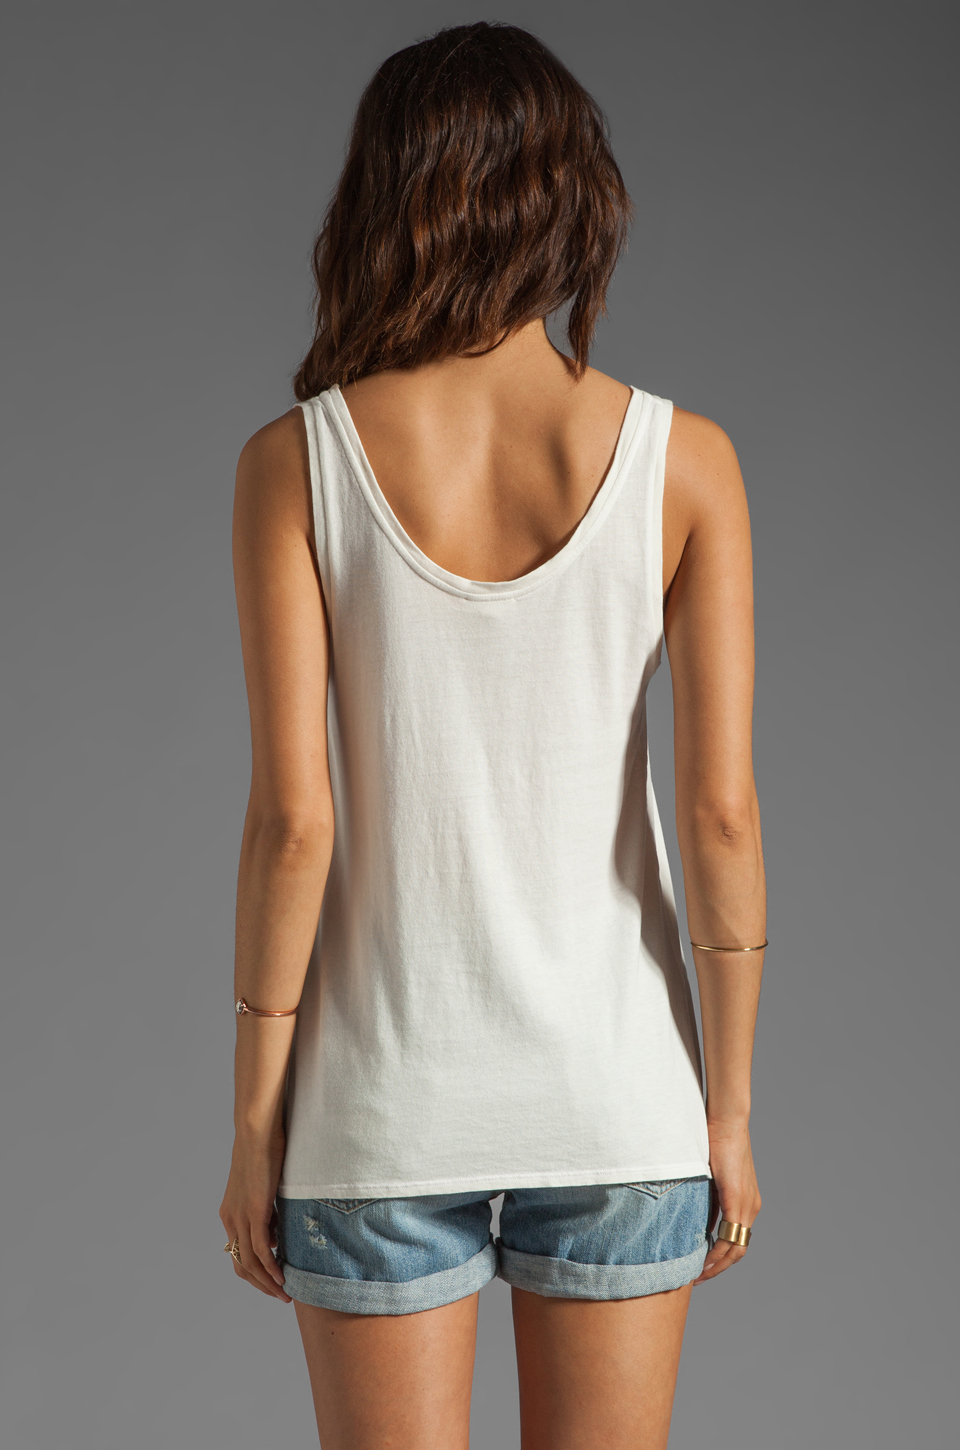 Soft Joie Ira Tank in Porcelain